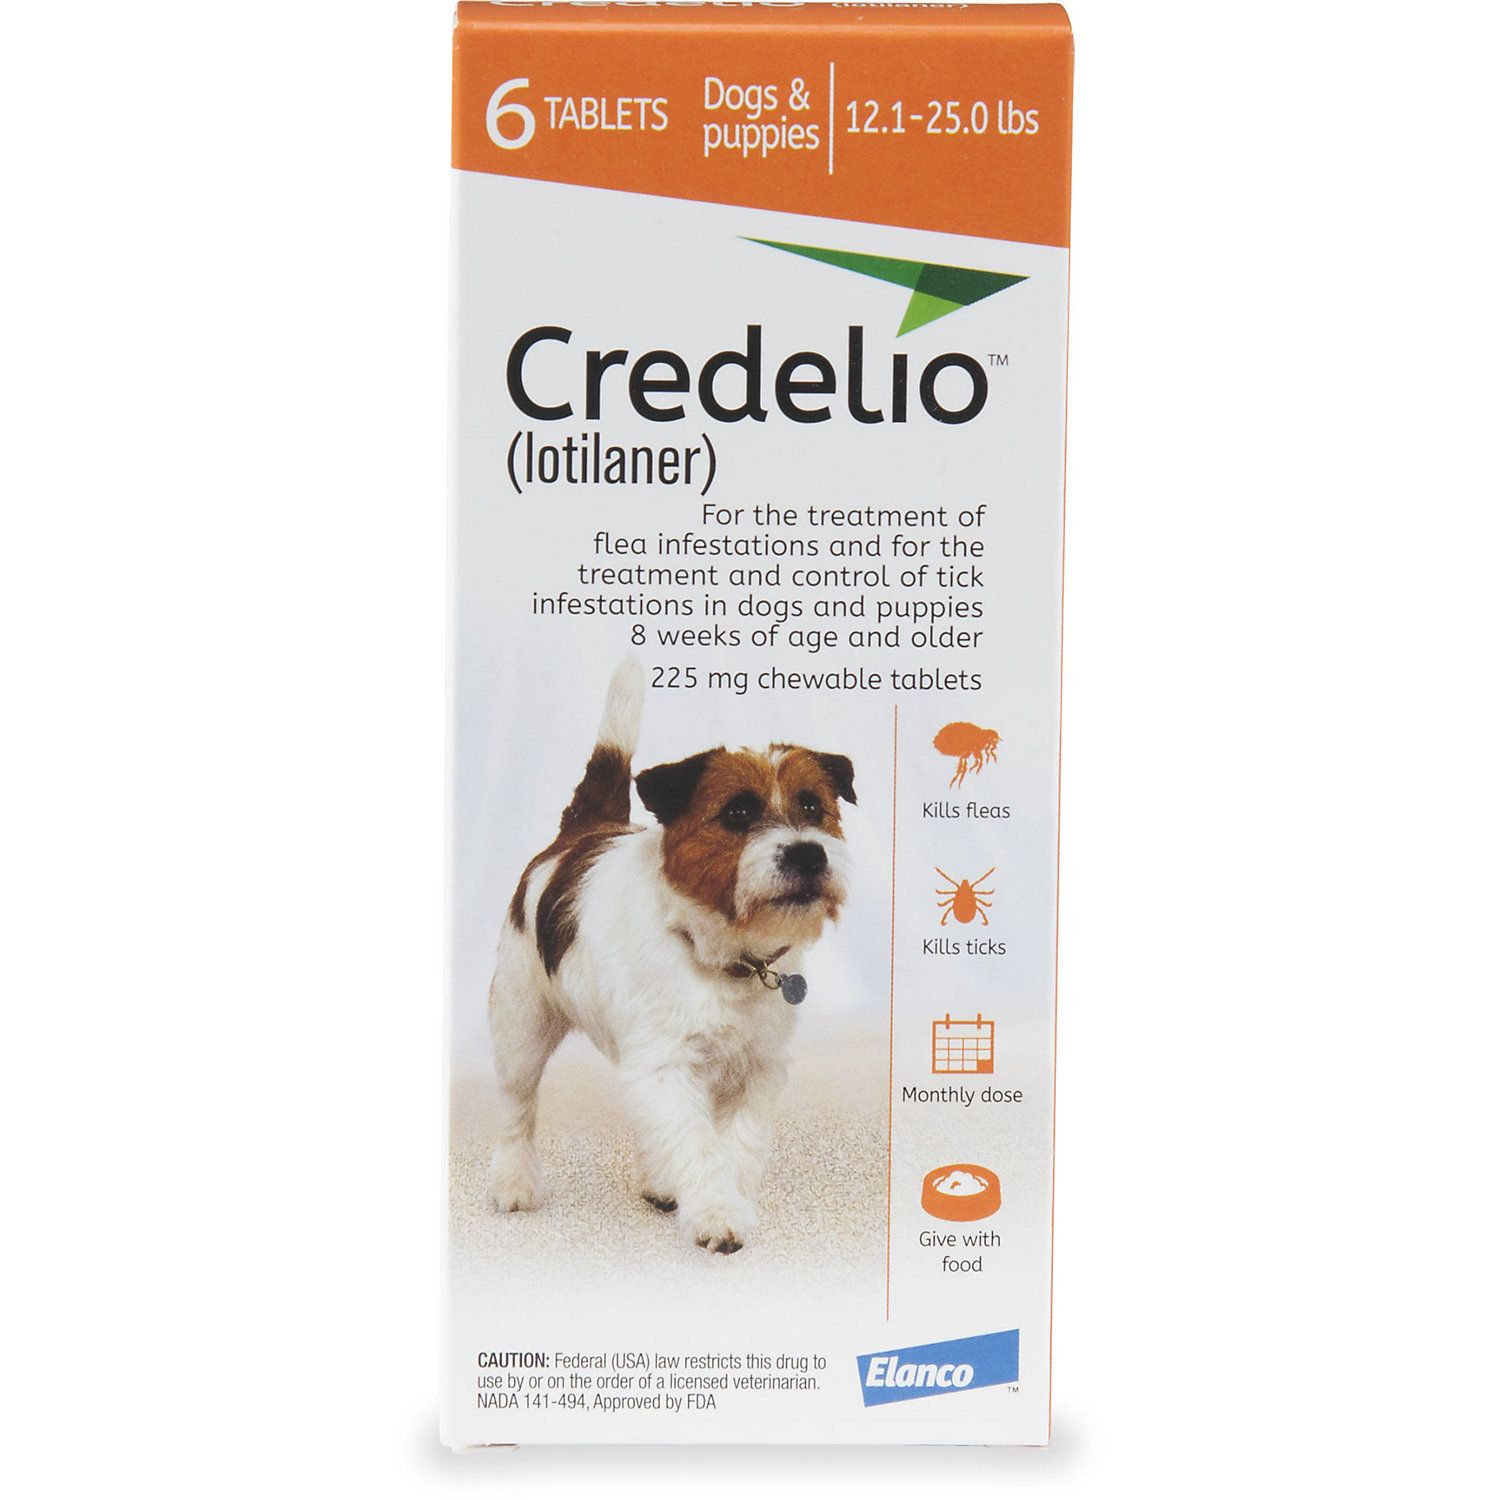 Credelio Chewable Tablets For Dogs 12 1 25 Lbs Orange 6 Pack